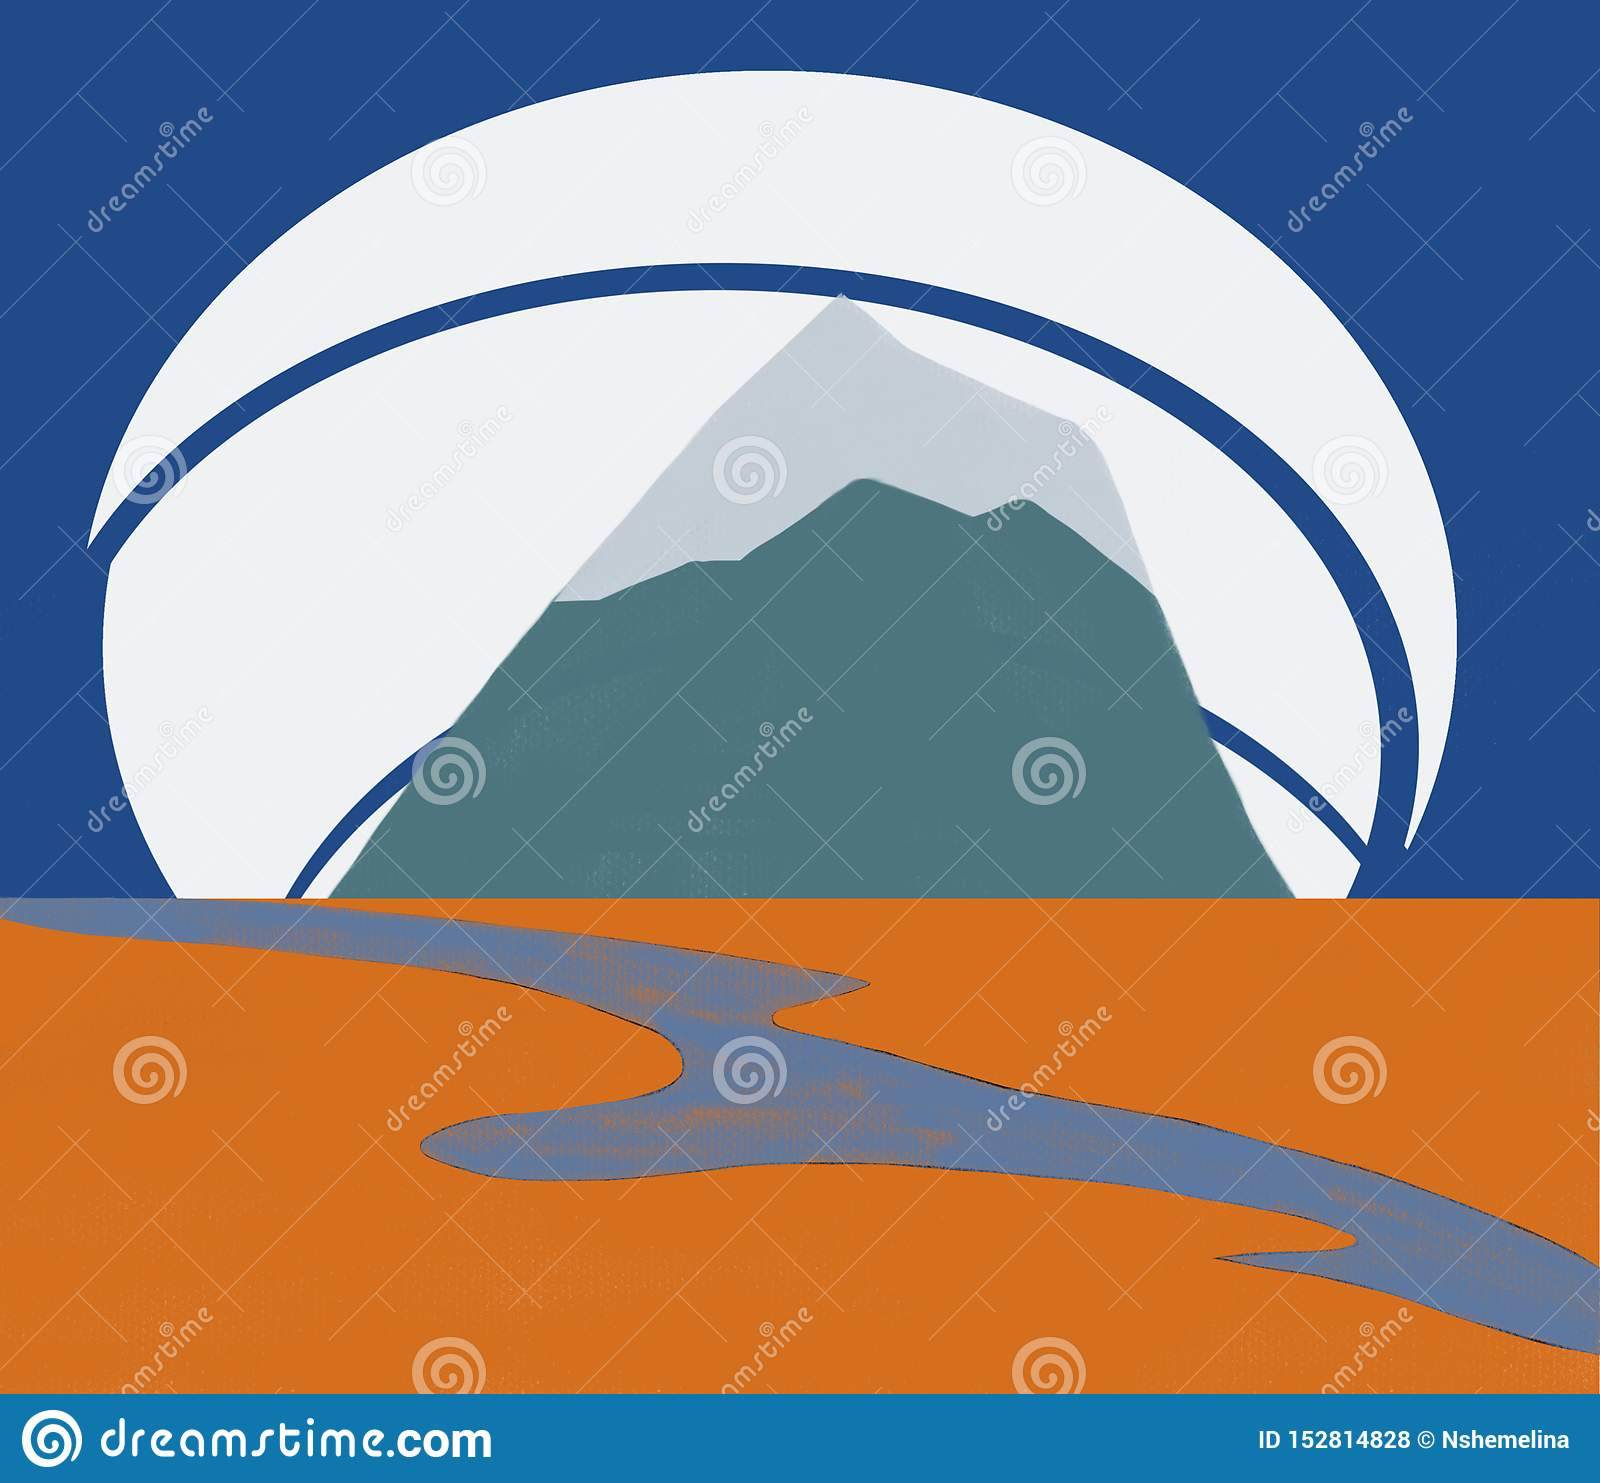 The river and mountain in the background, travel icon design